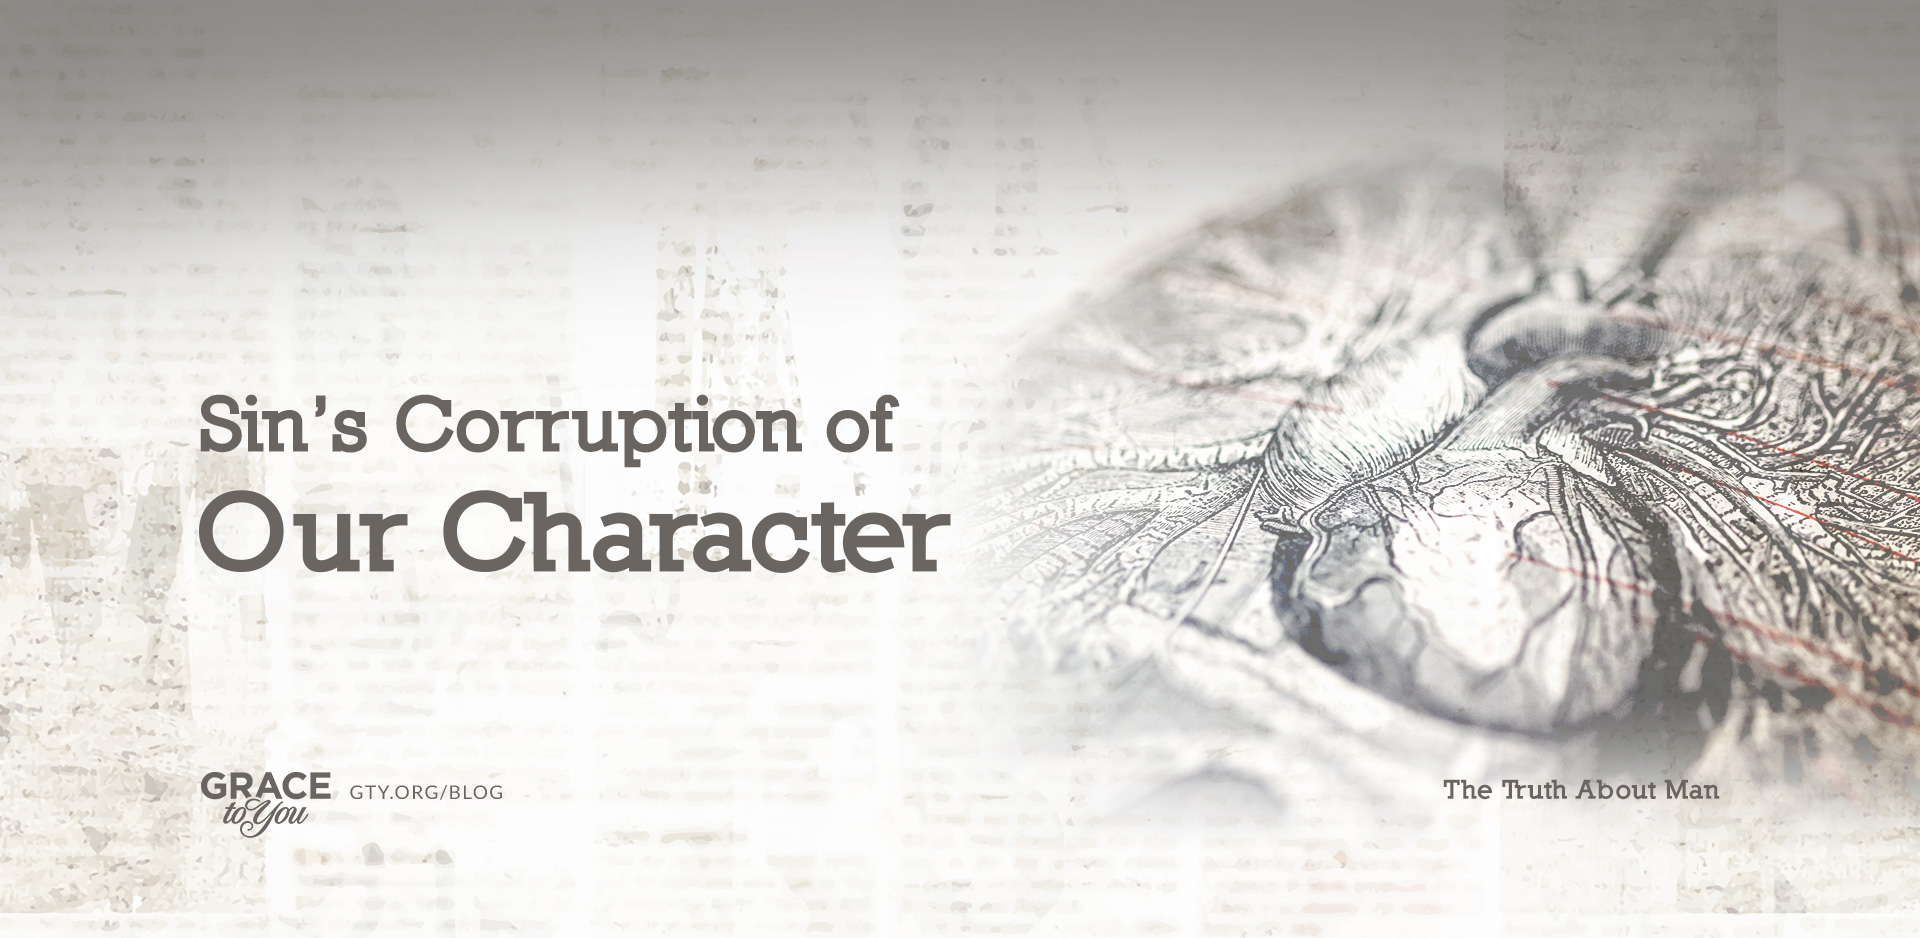 Sin's Corruption of Our Character